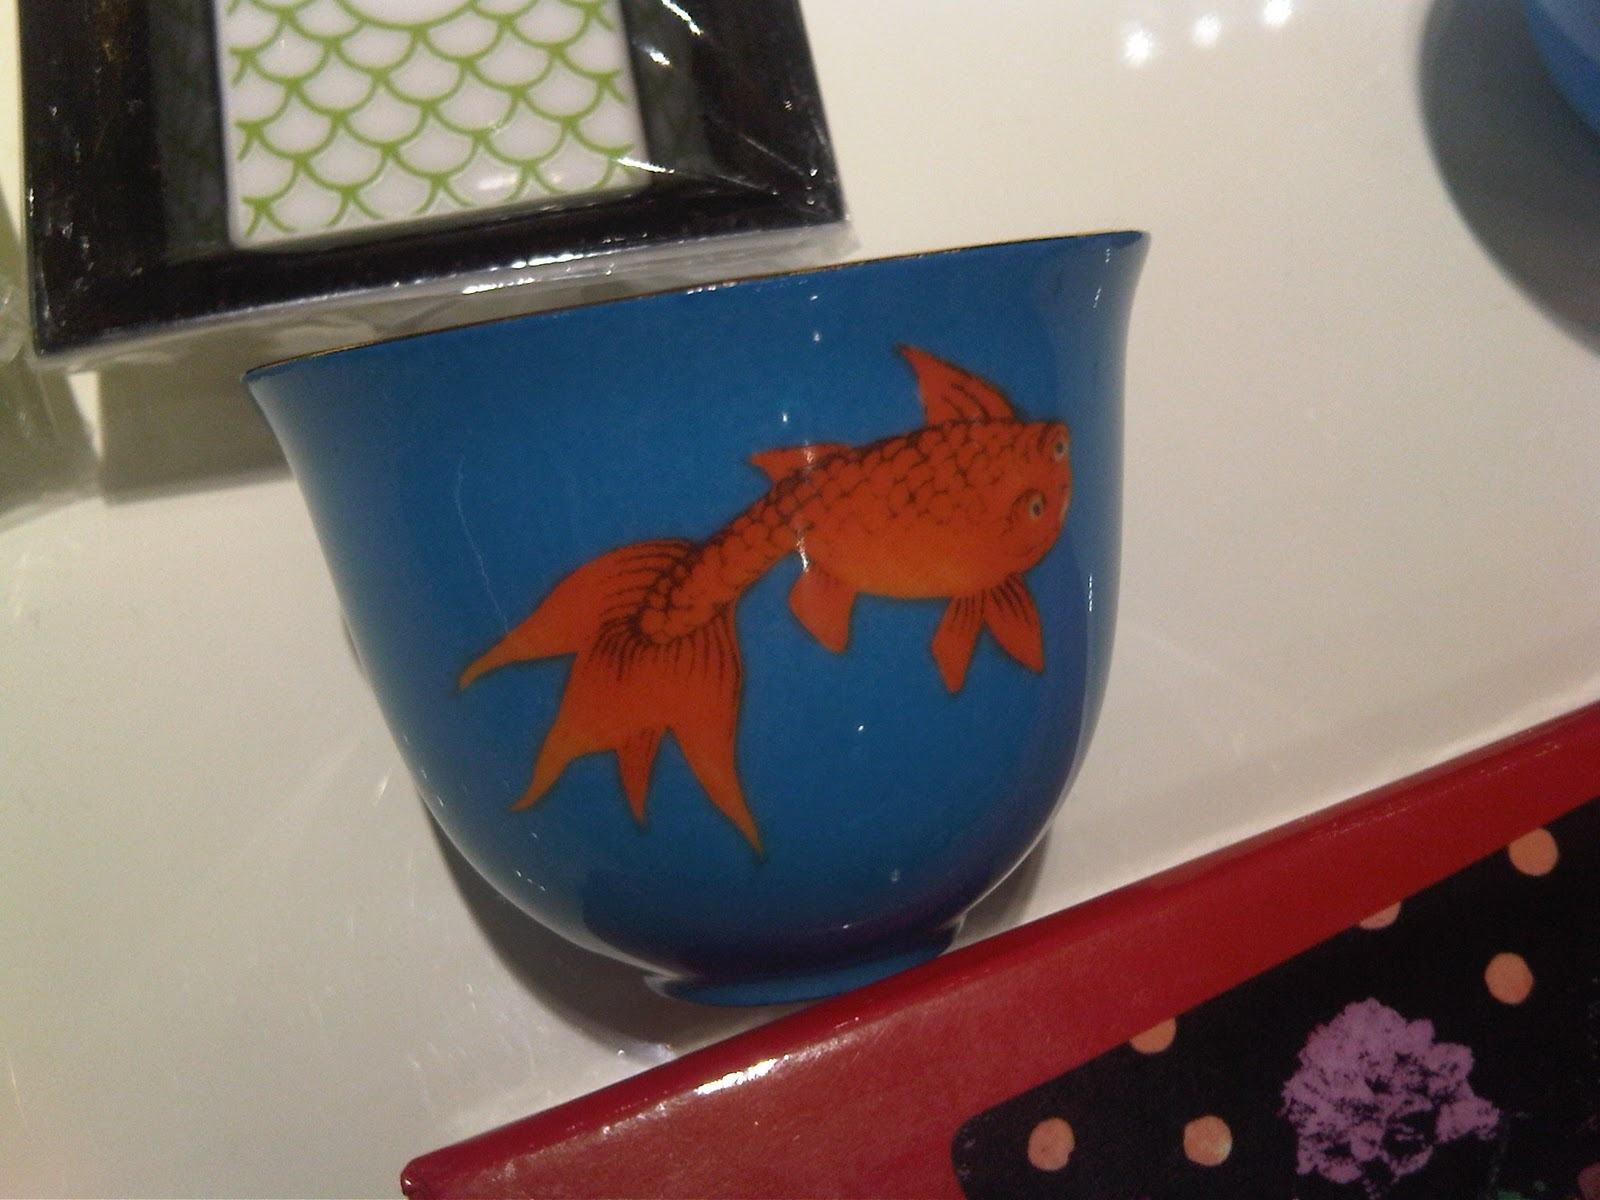 cups with koi fish design